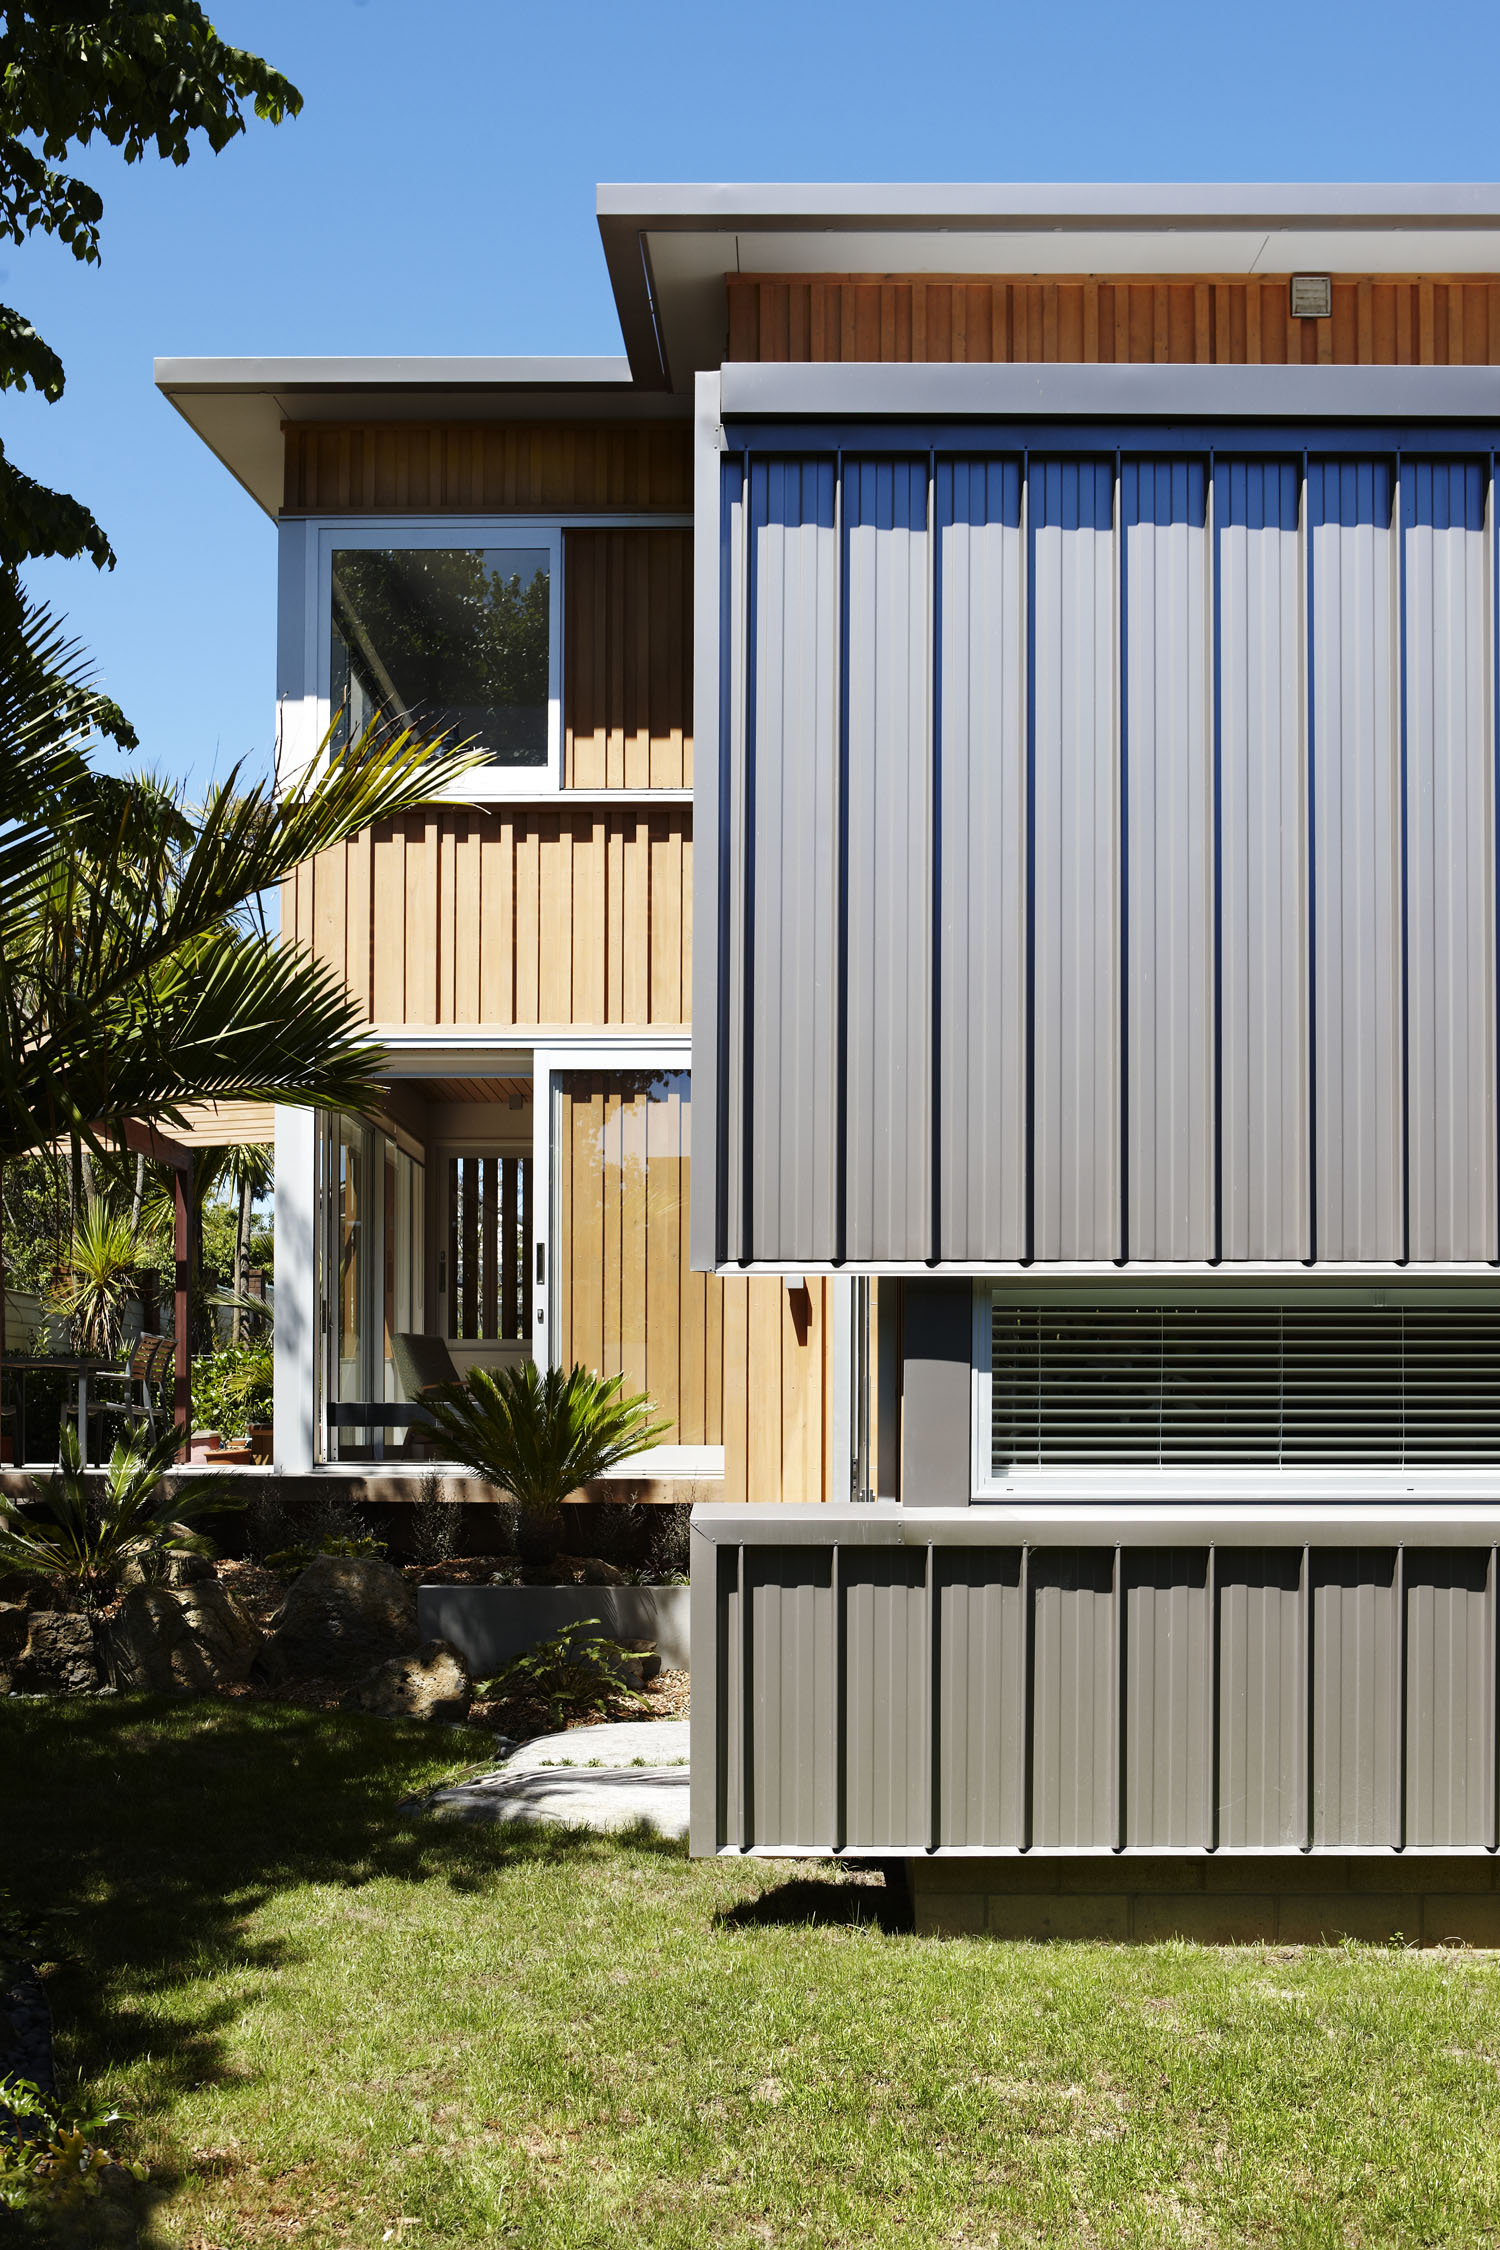 Dave Strachan townhouse roofing on library wall blends with timber cladding of main form